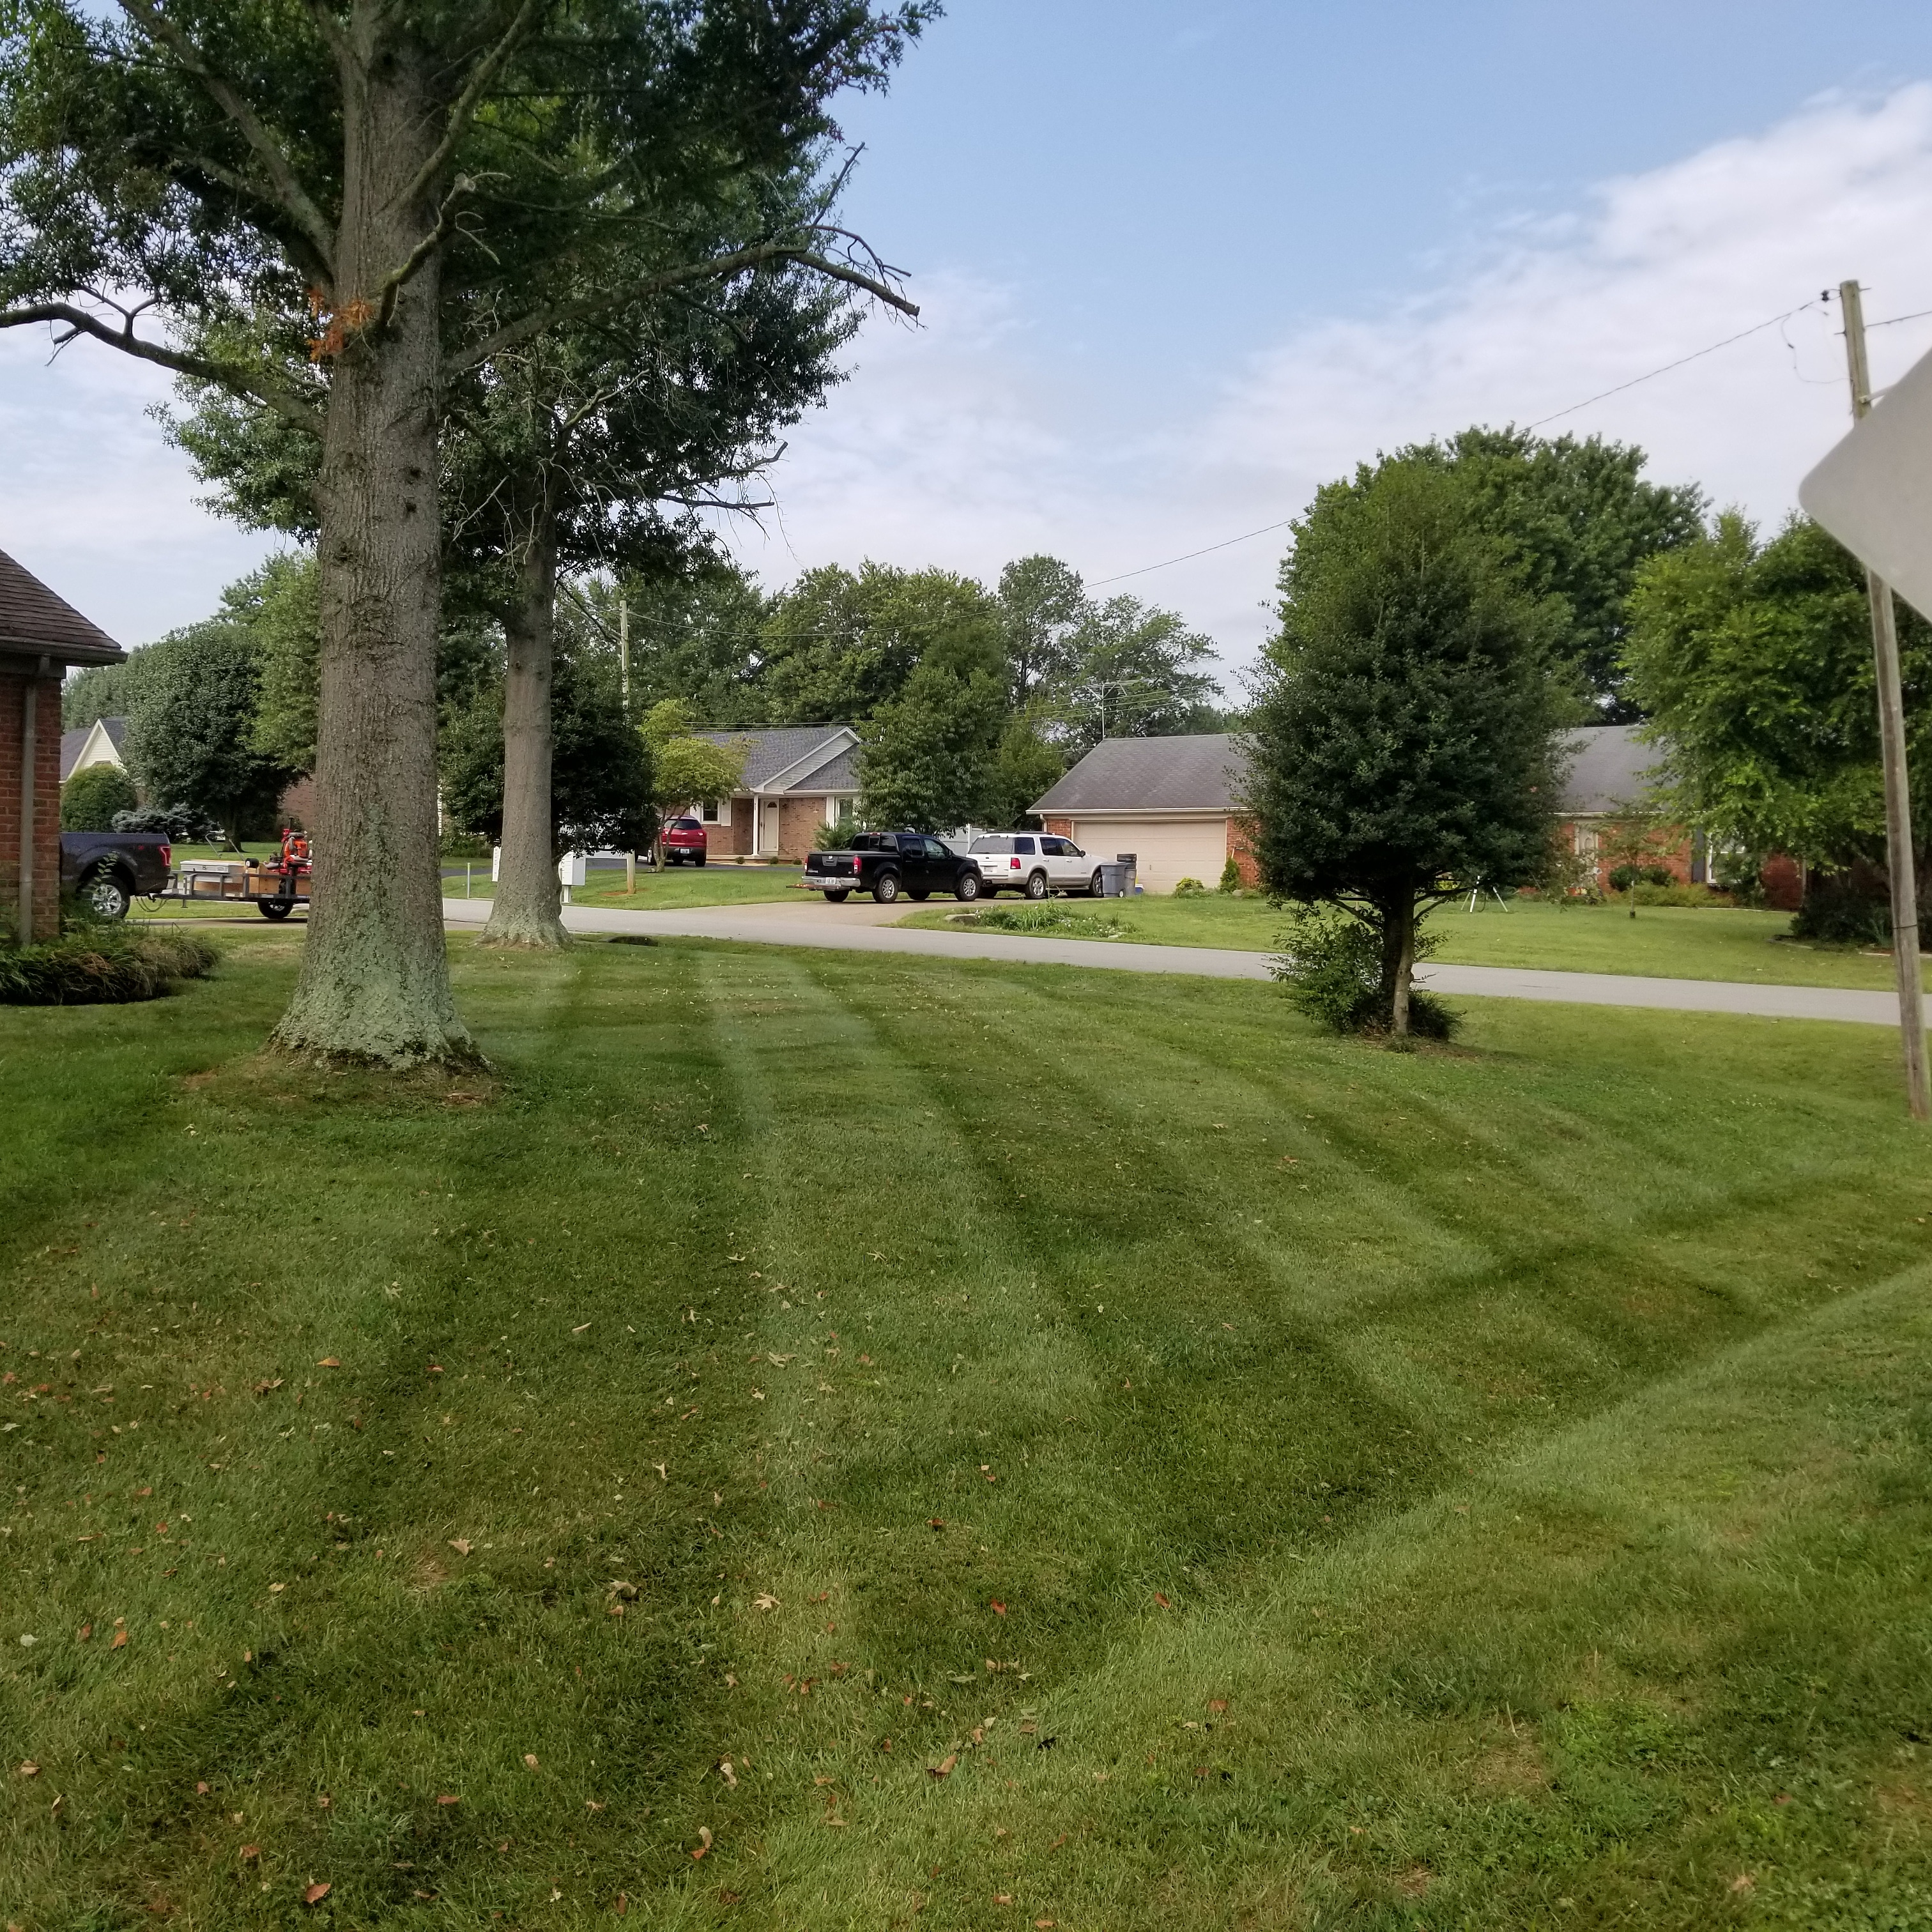 Lawn Service And Landscape: Lawn Care Bowling Green, KY